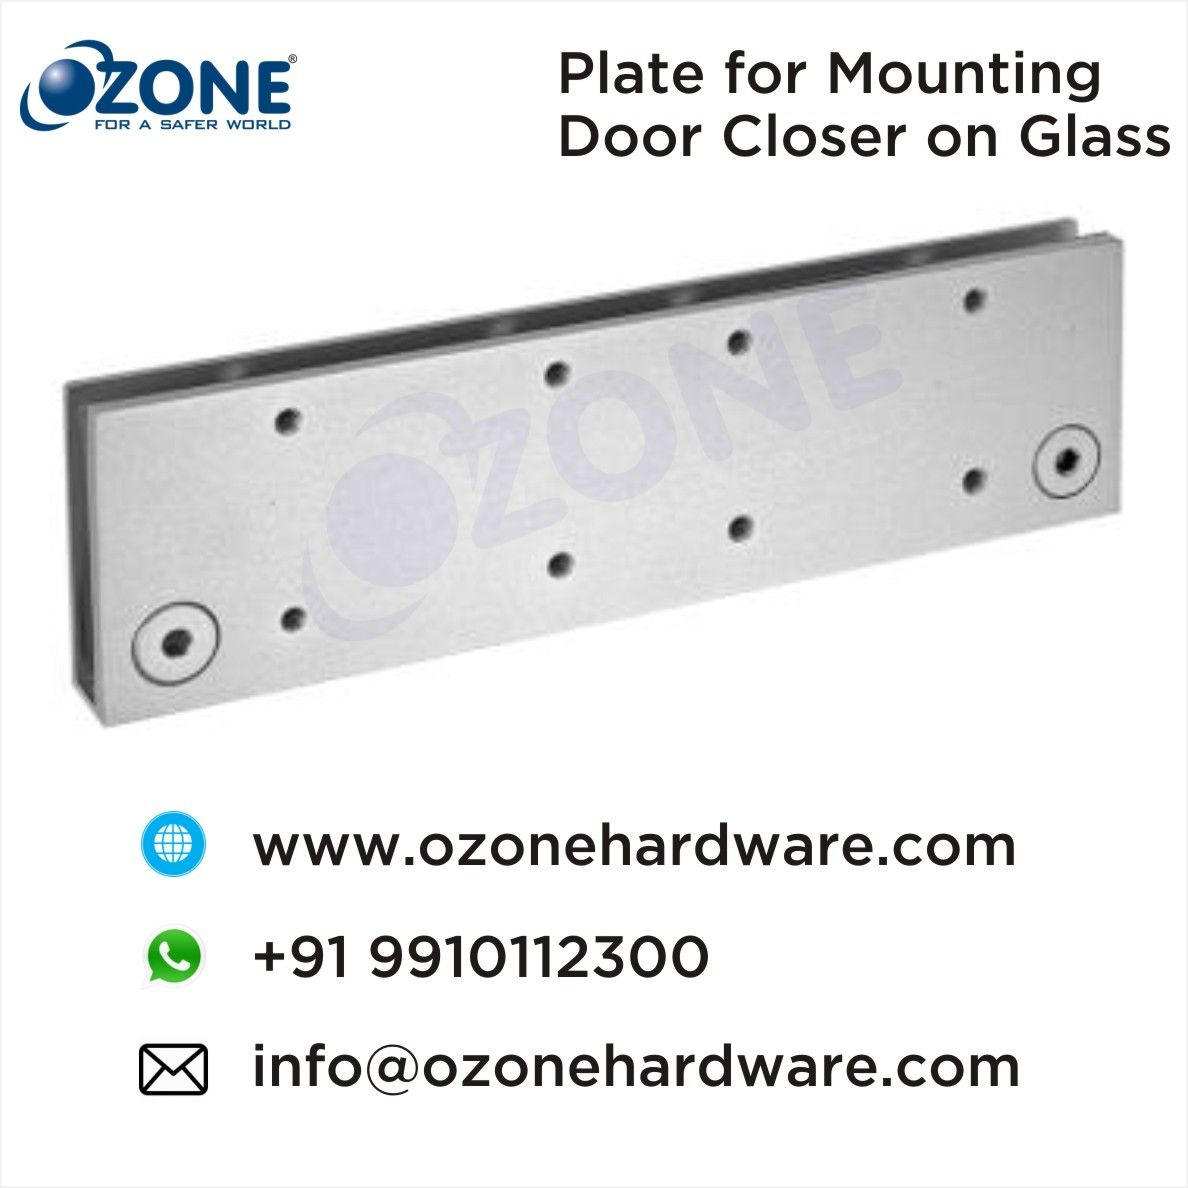 Plate For Mounting Door Closer On Glass Suppliers Traders Of Door Closer Accessories The Modern Door Technology Door Co Closer Doors Modern Door